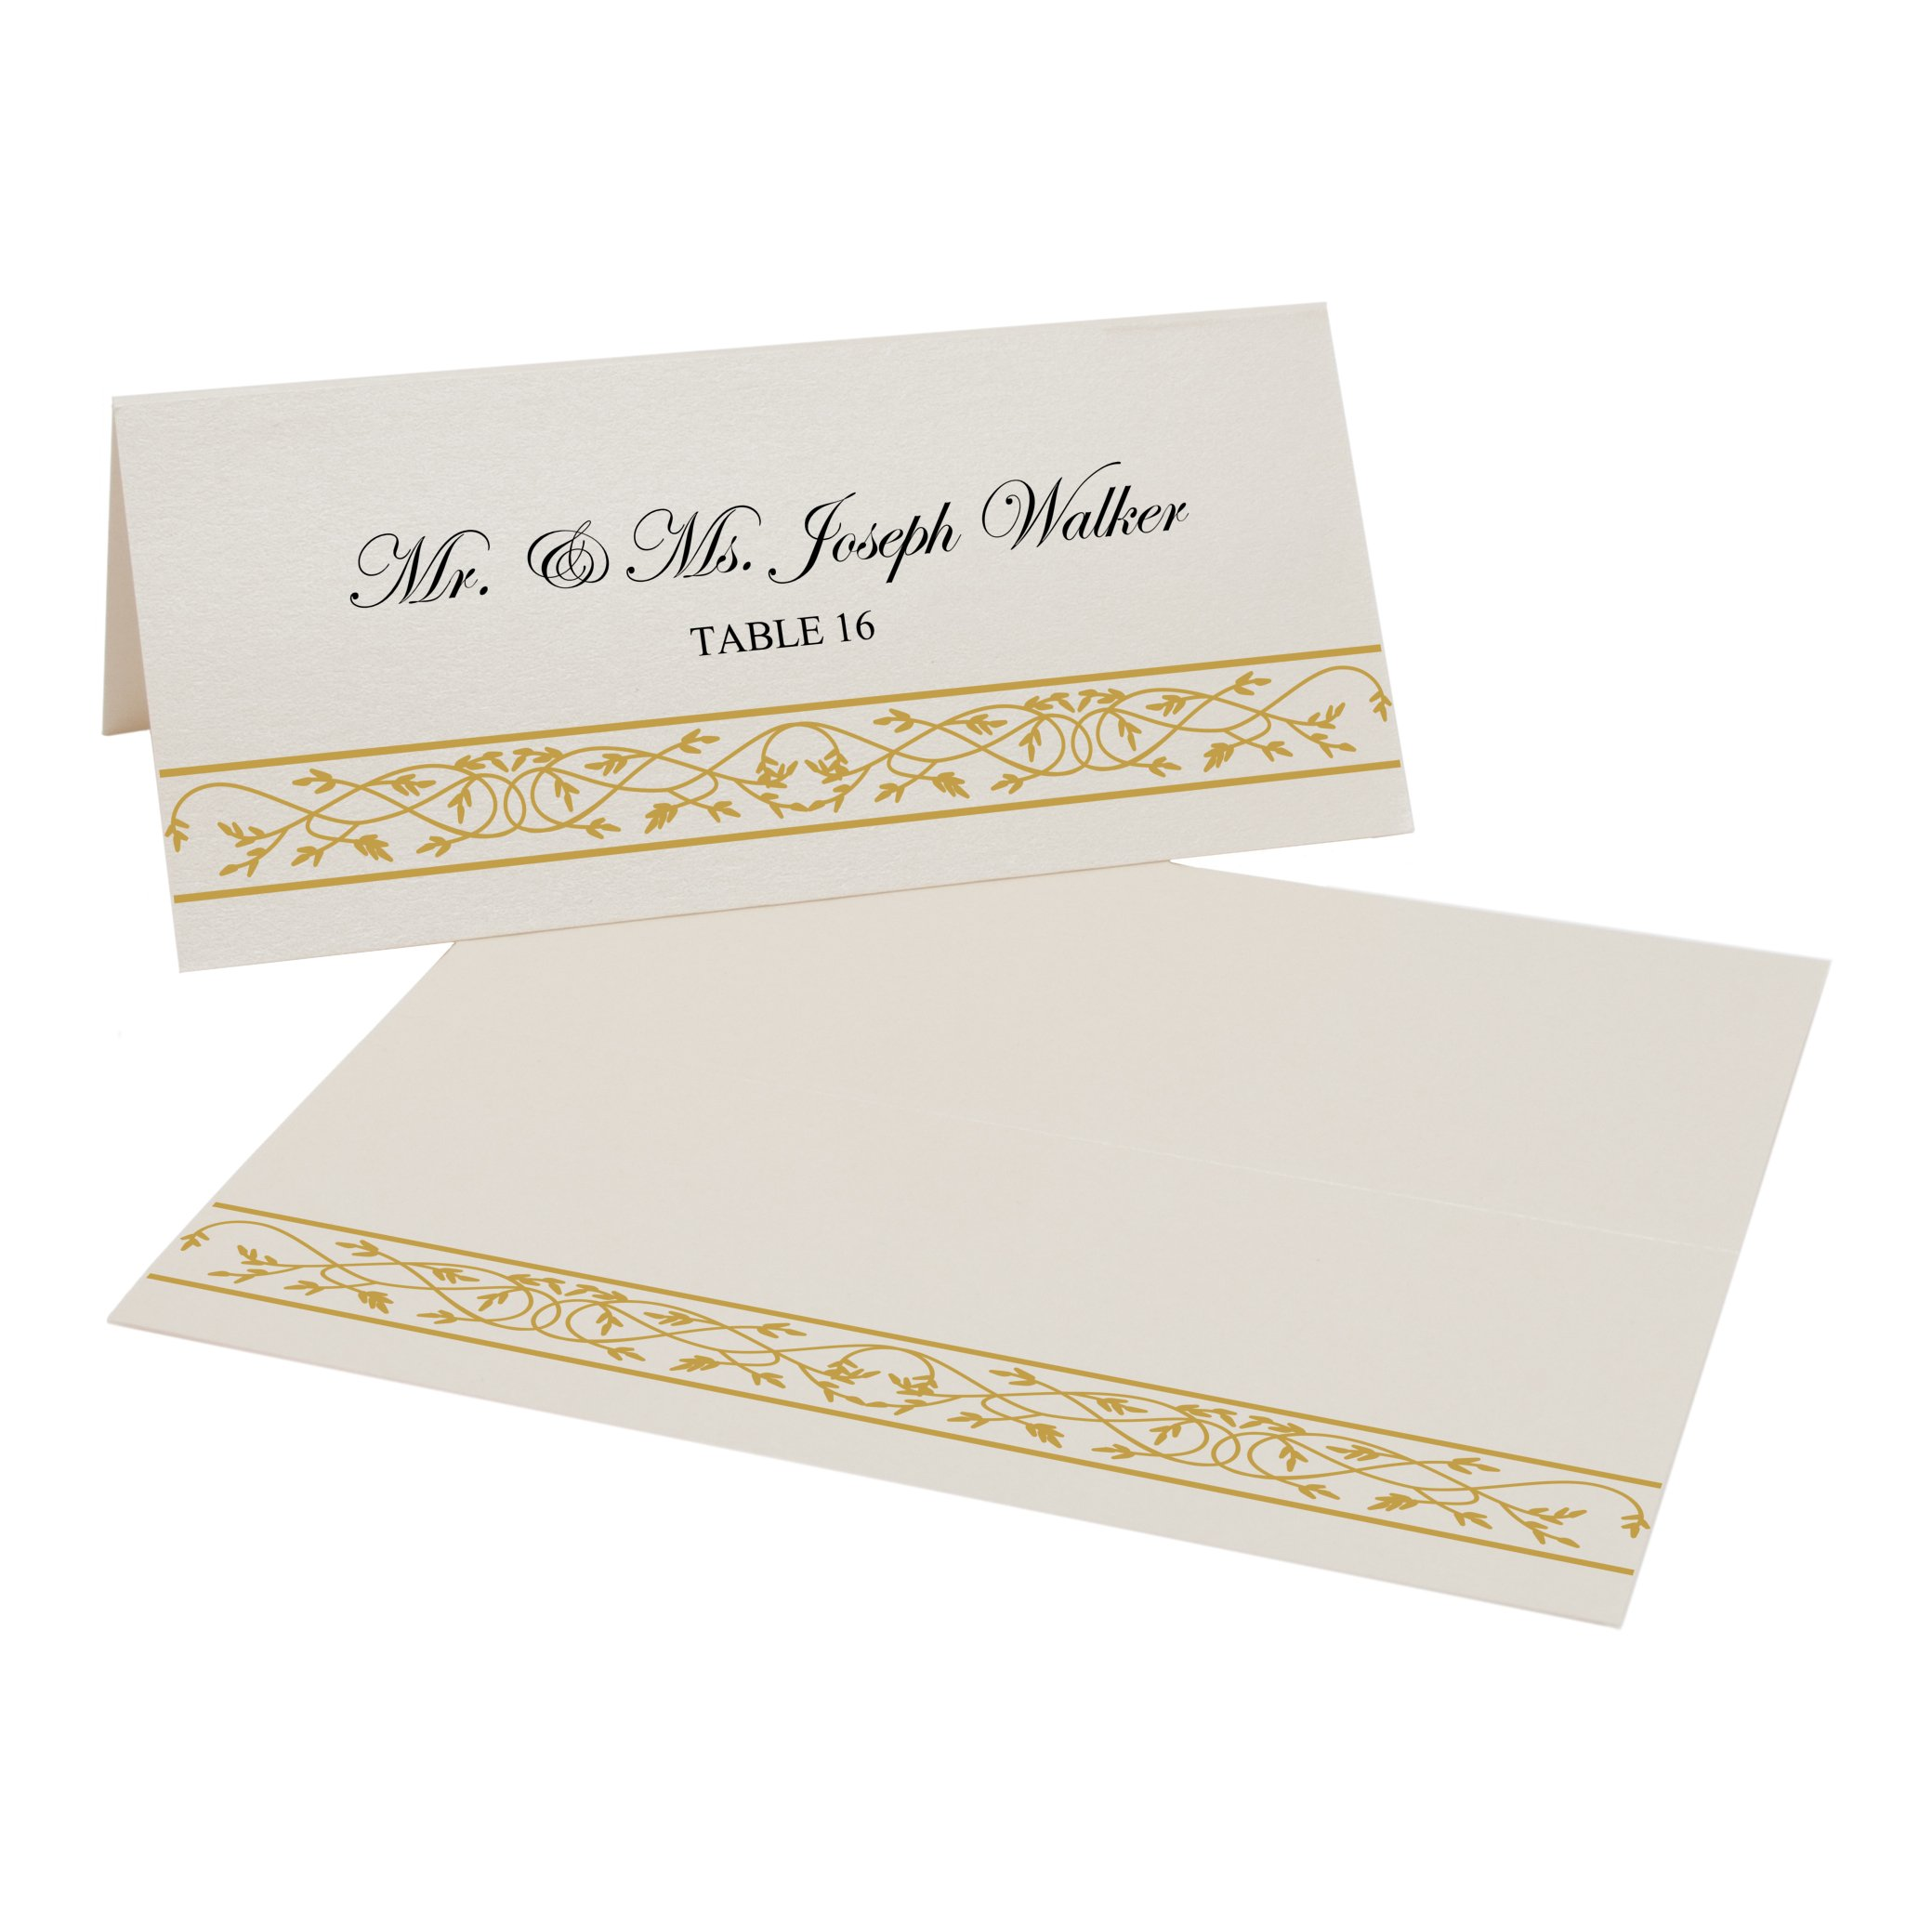 Celtic Leaf Border Easy Print Place Cards, Champagne, Gold, Set of 400 (100 Sheets) by Documents and Designs